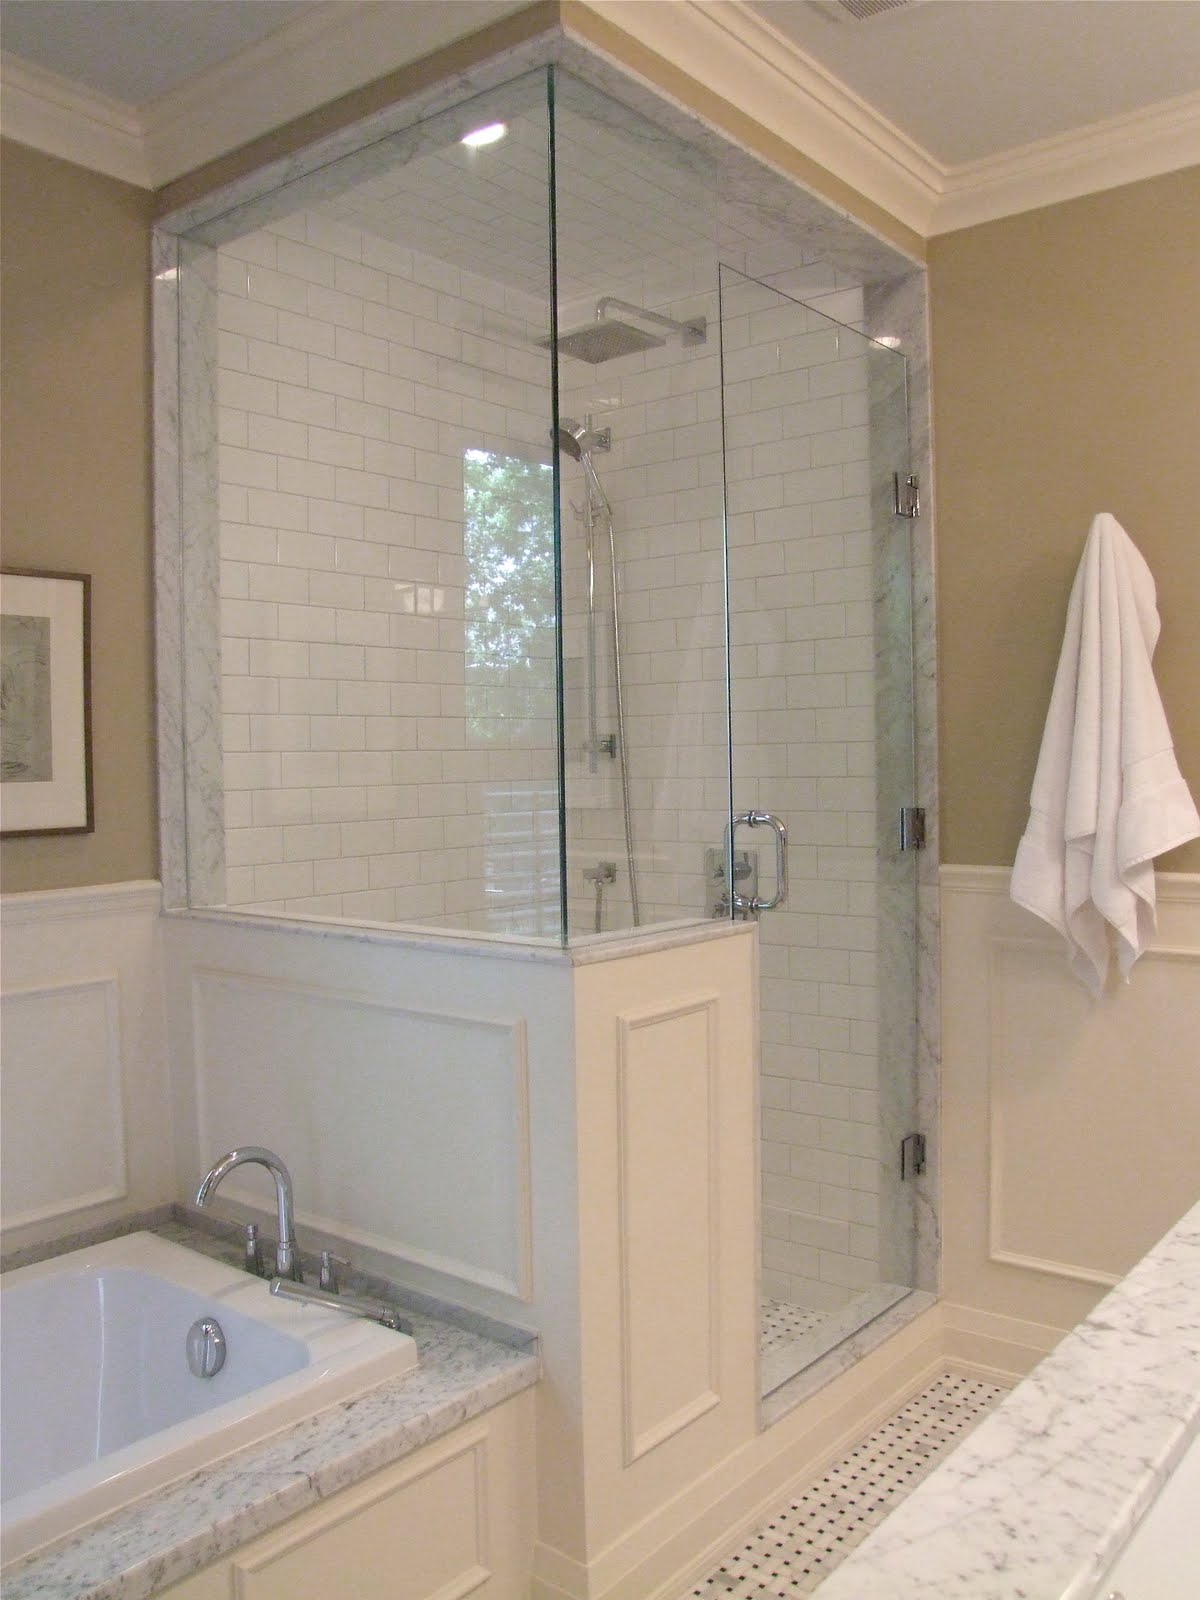 Creed after e design bathroom project part 2 for Bathroom layout ideas